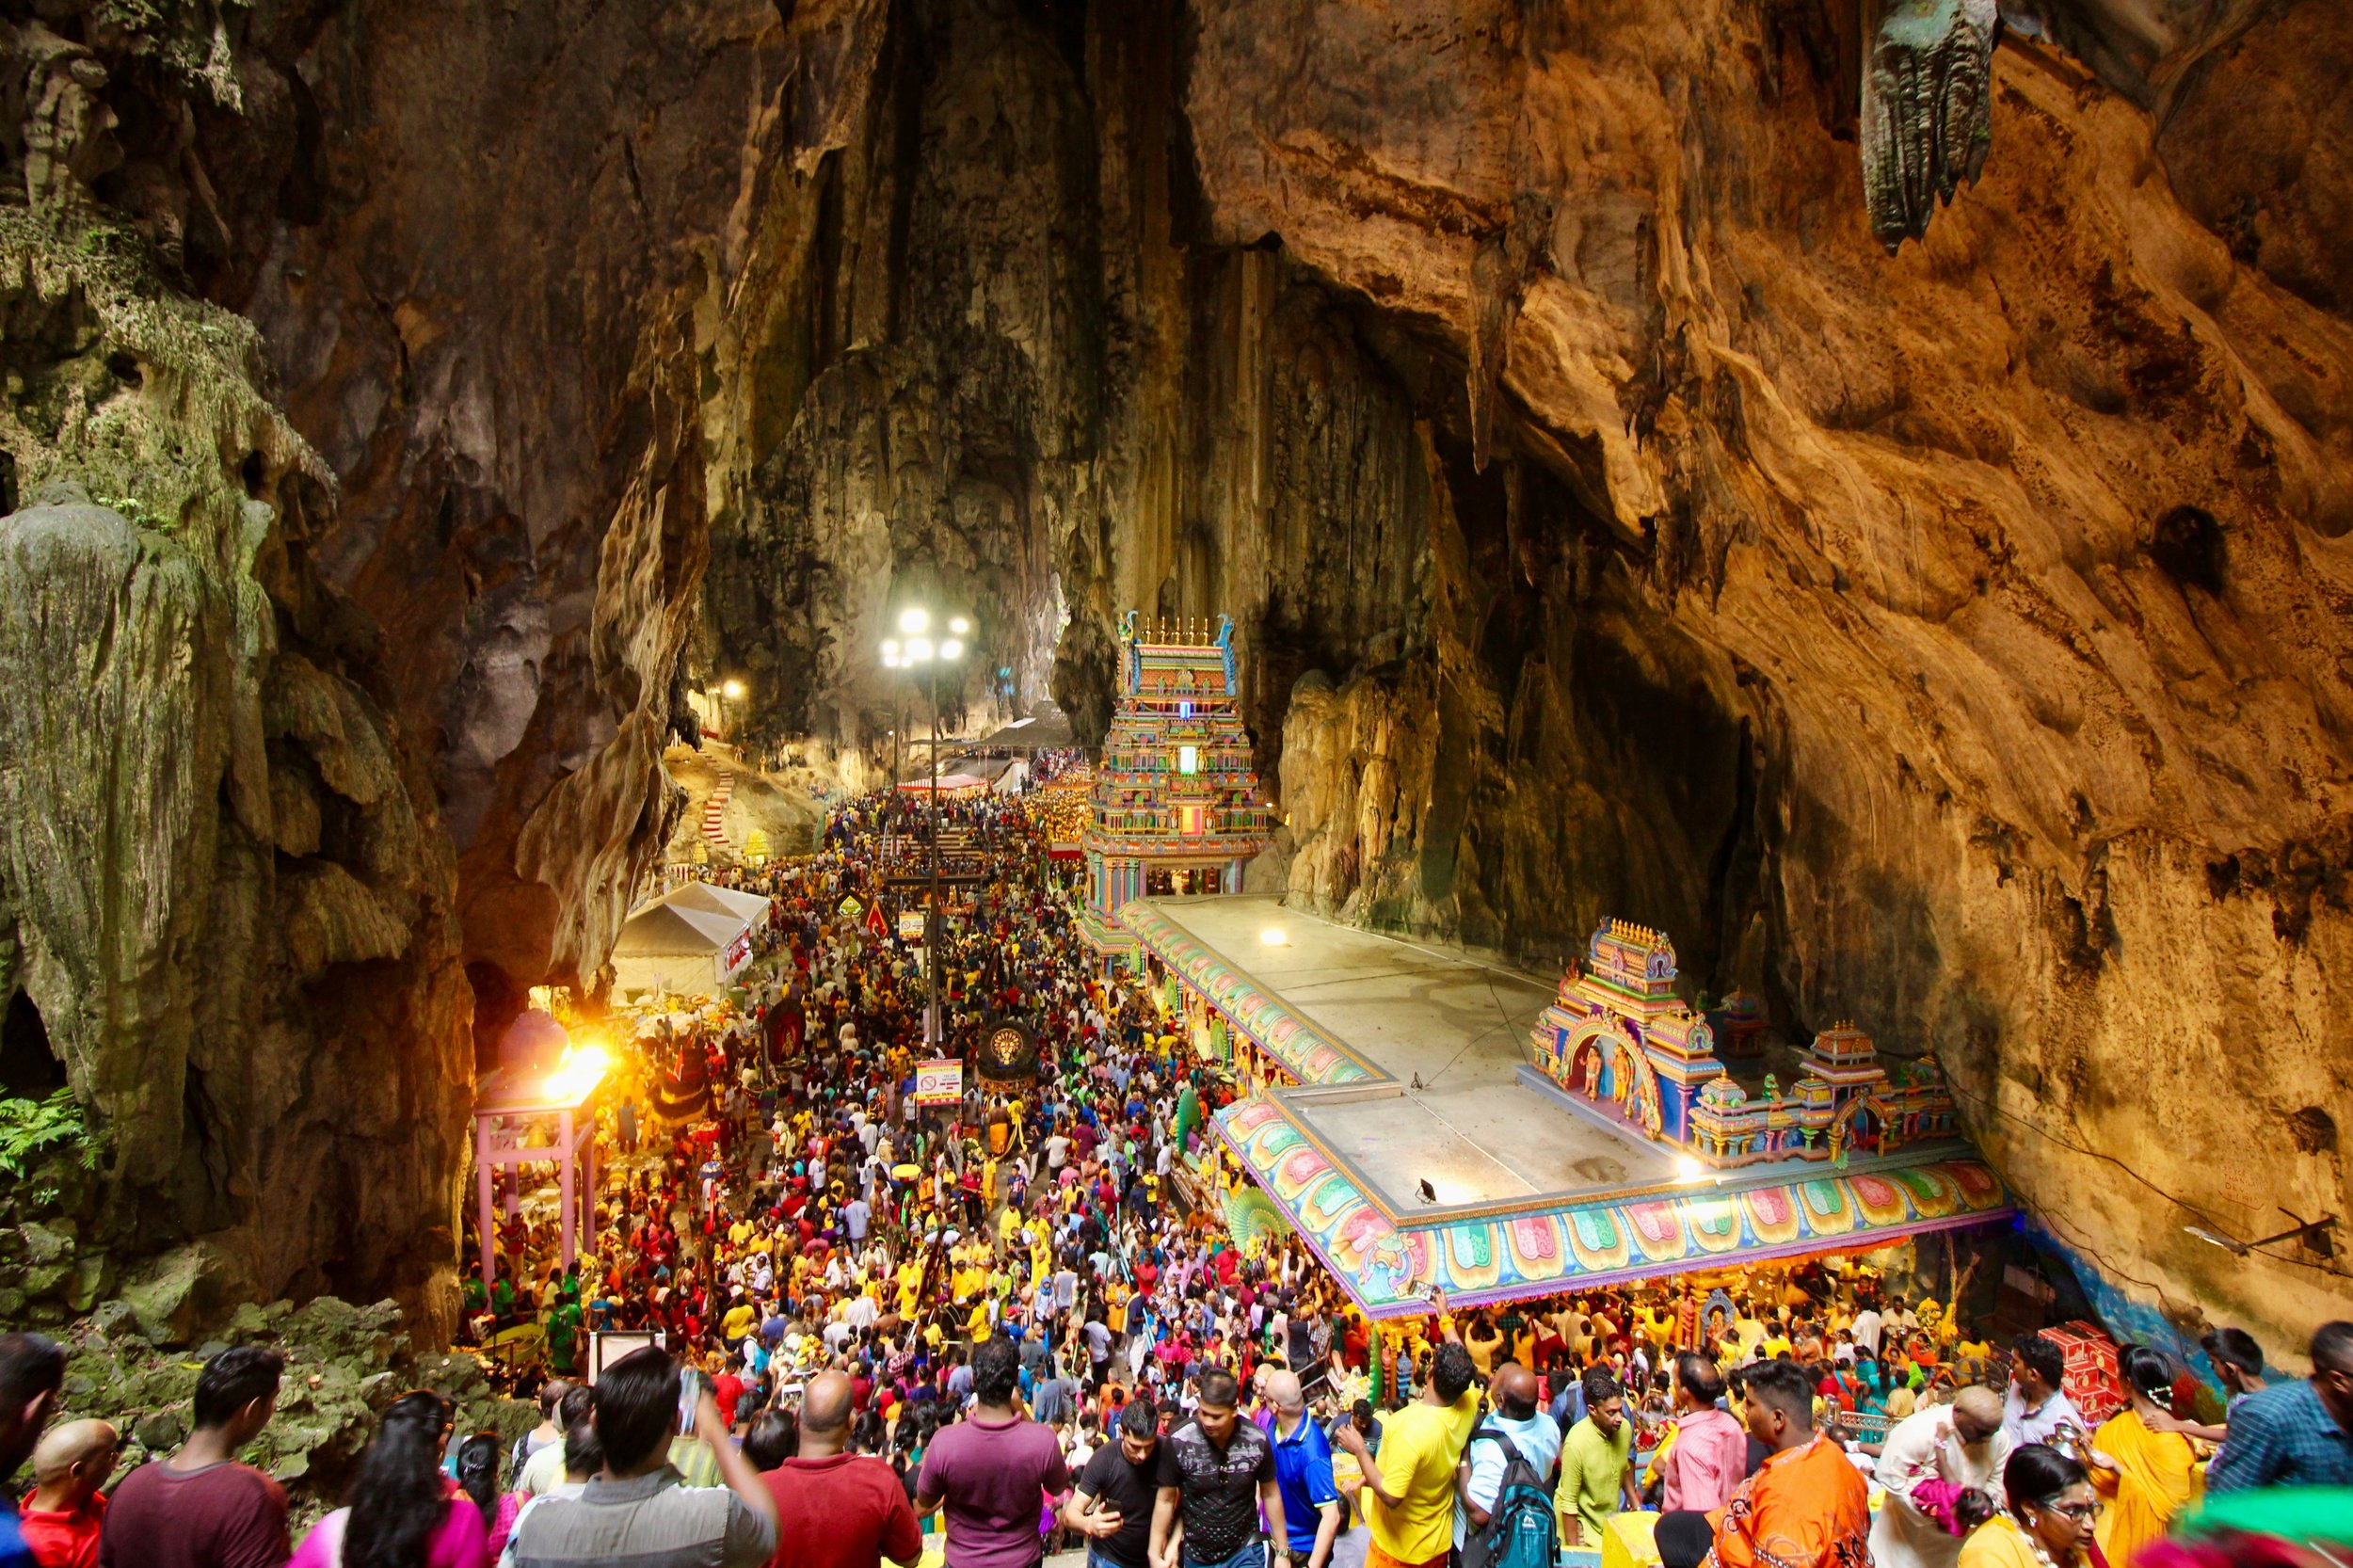 """A Visit to the Batu Caves - Has the era of the Instagramming """"culture vulture"""" impacted Thaipusam's solemn self-sacrifice?"""